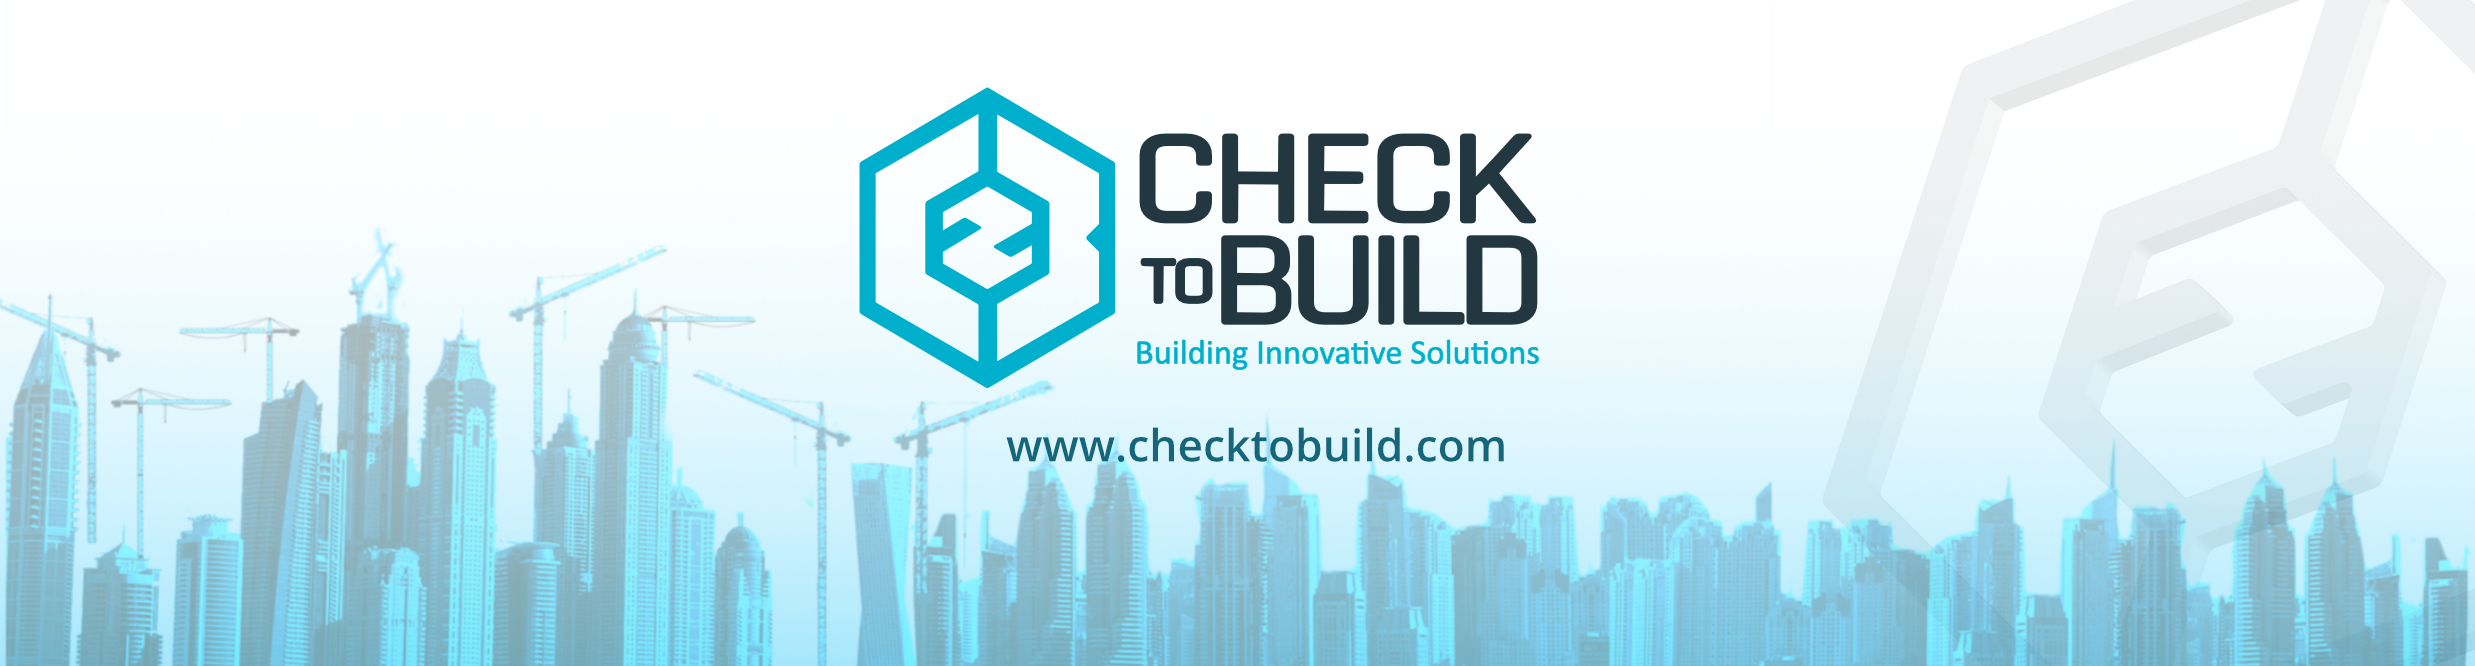 Check to build